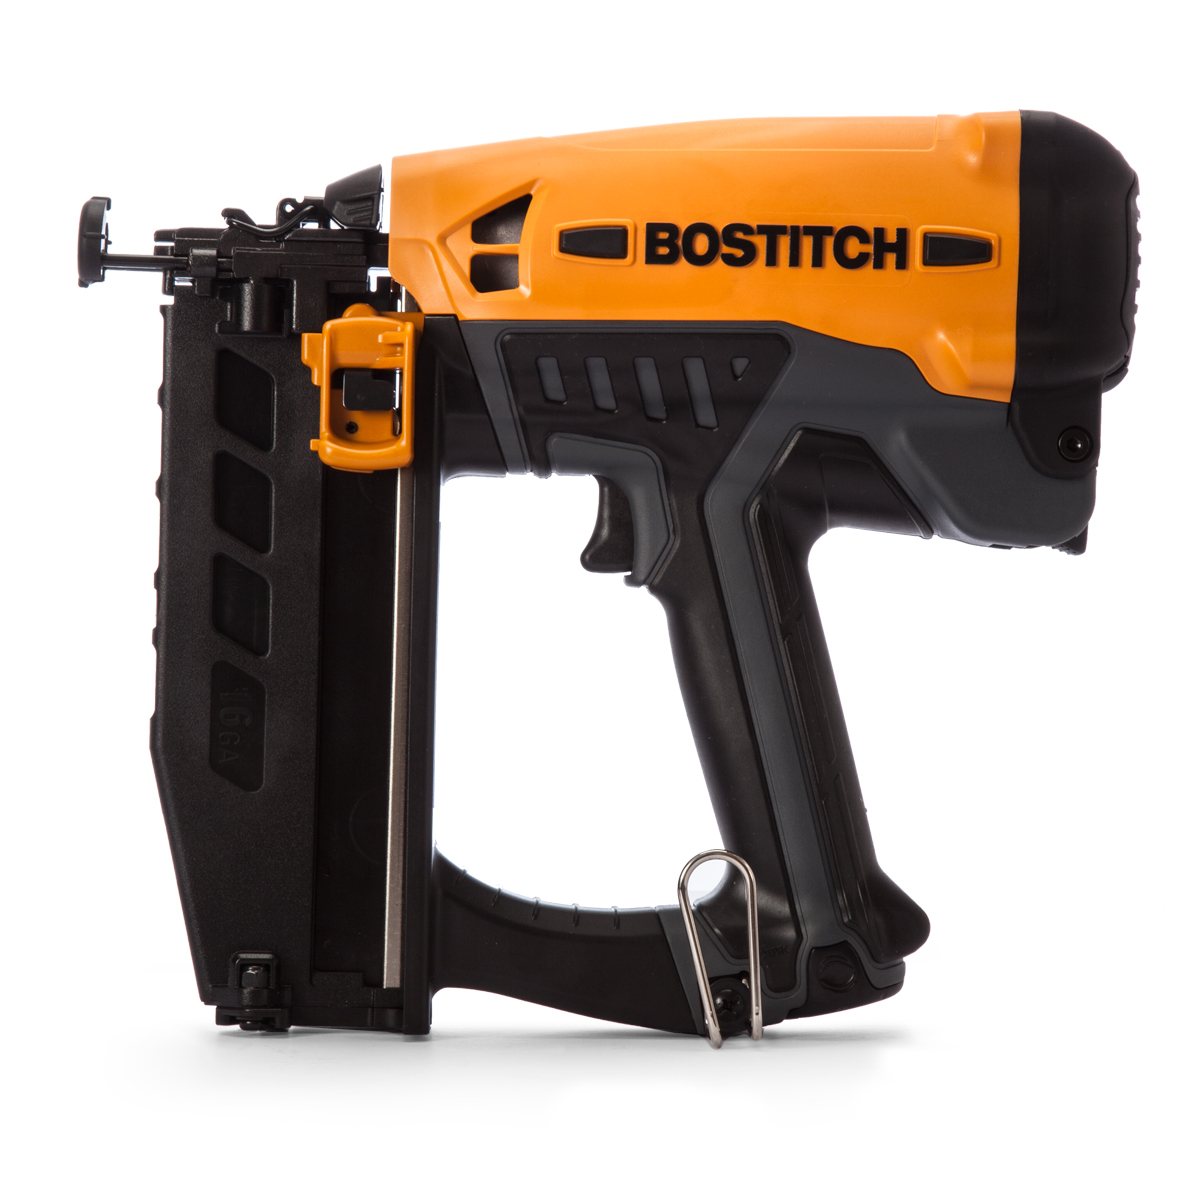 BOSTITCH Cordless Straight Finish Nailer gfn1664k Factory Reconditioned by